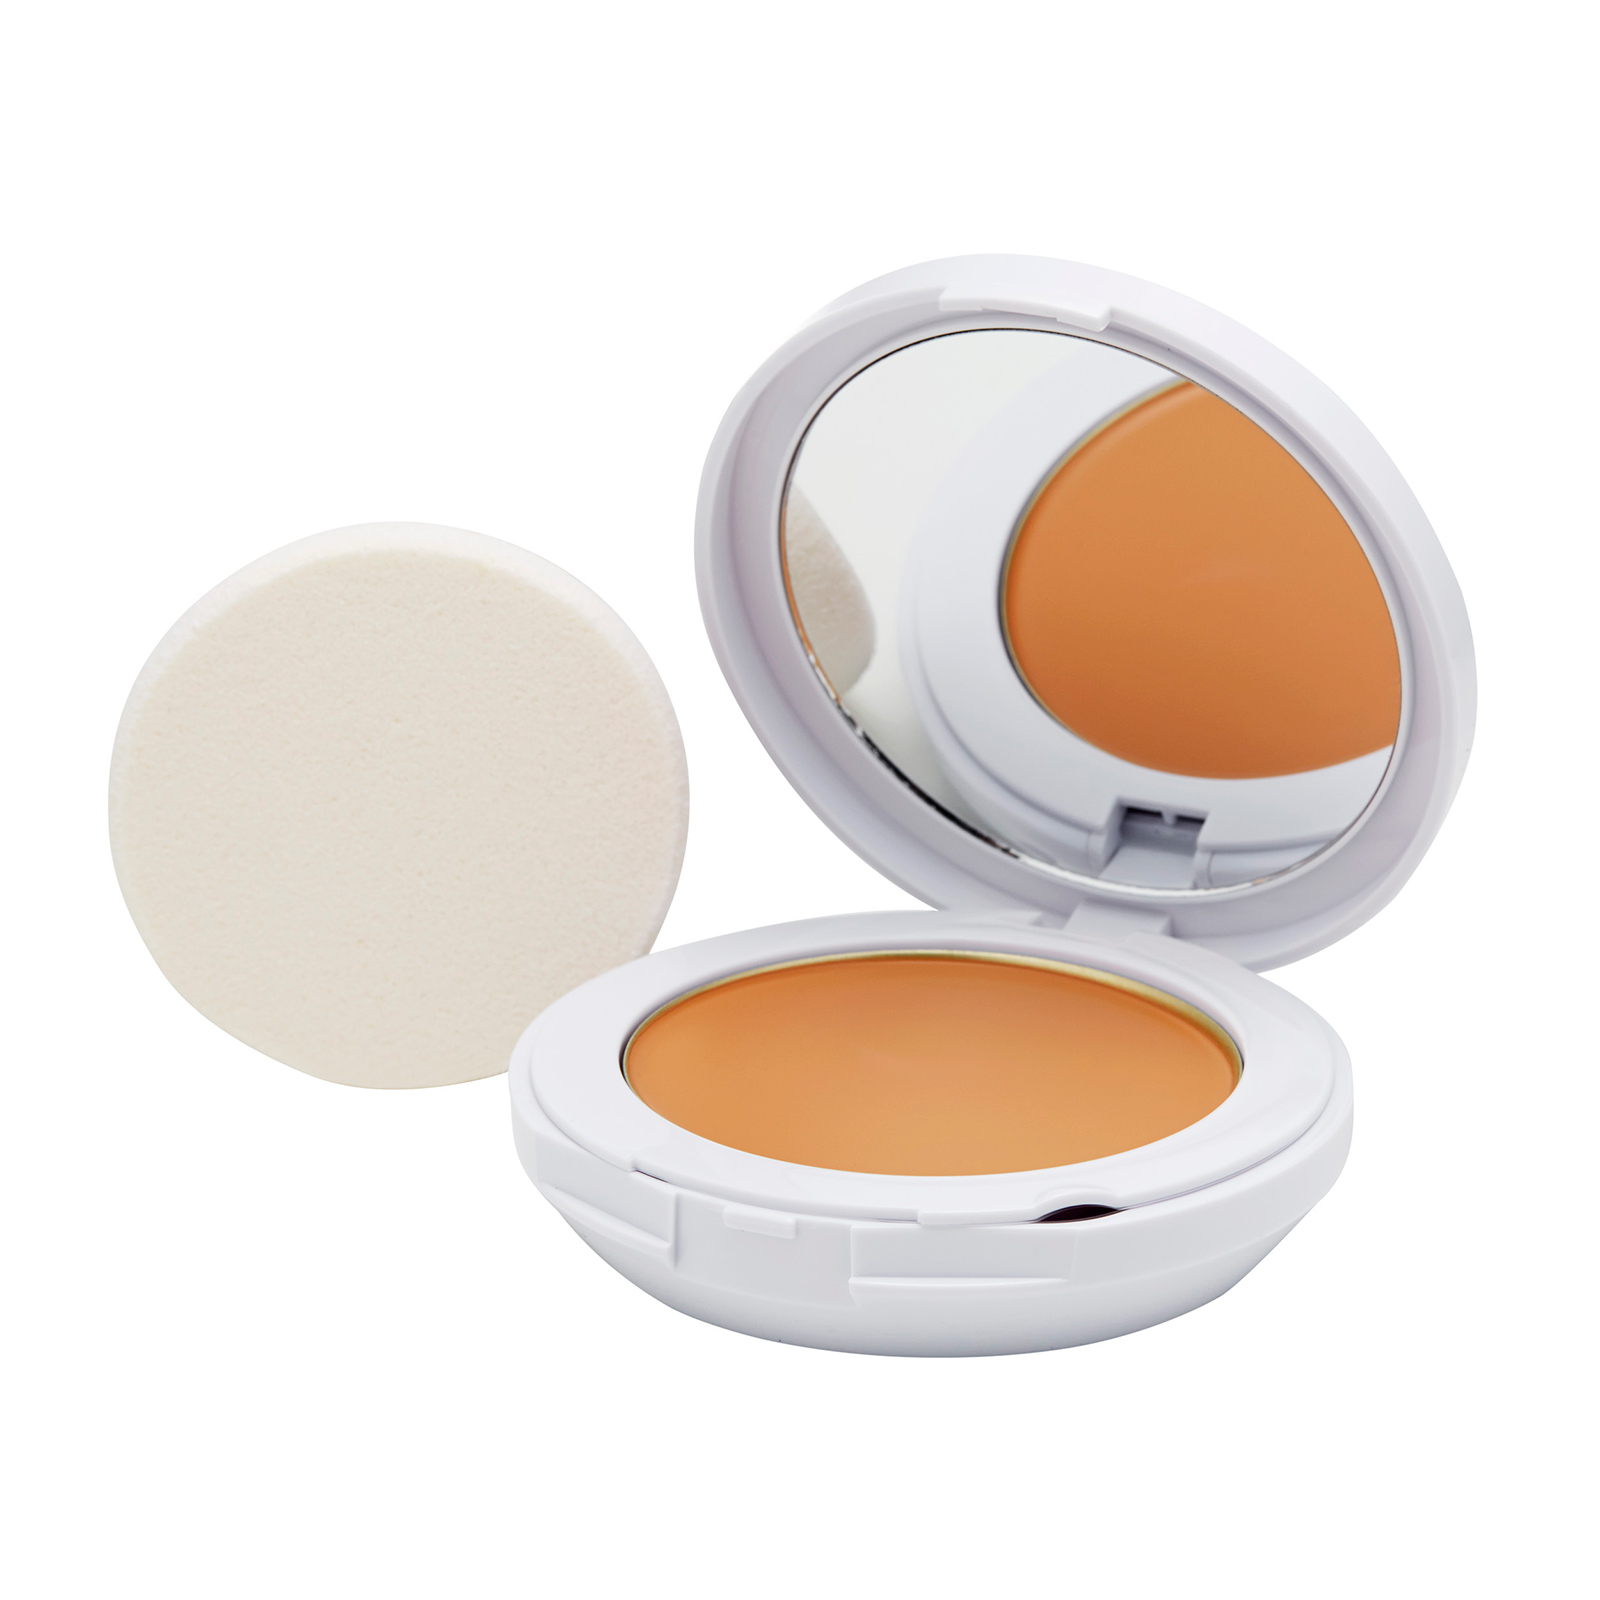 Embryolisse  Artist Secret Compact Foundation Cream SPF 20 Honey, 9g, from Cosme-De.com